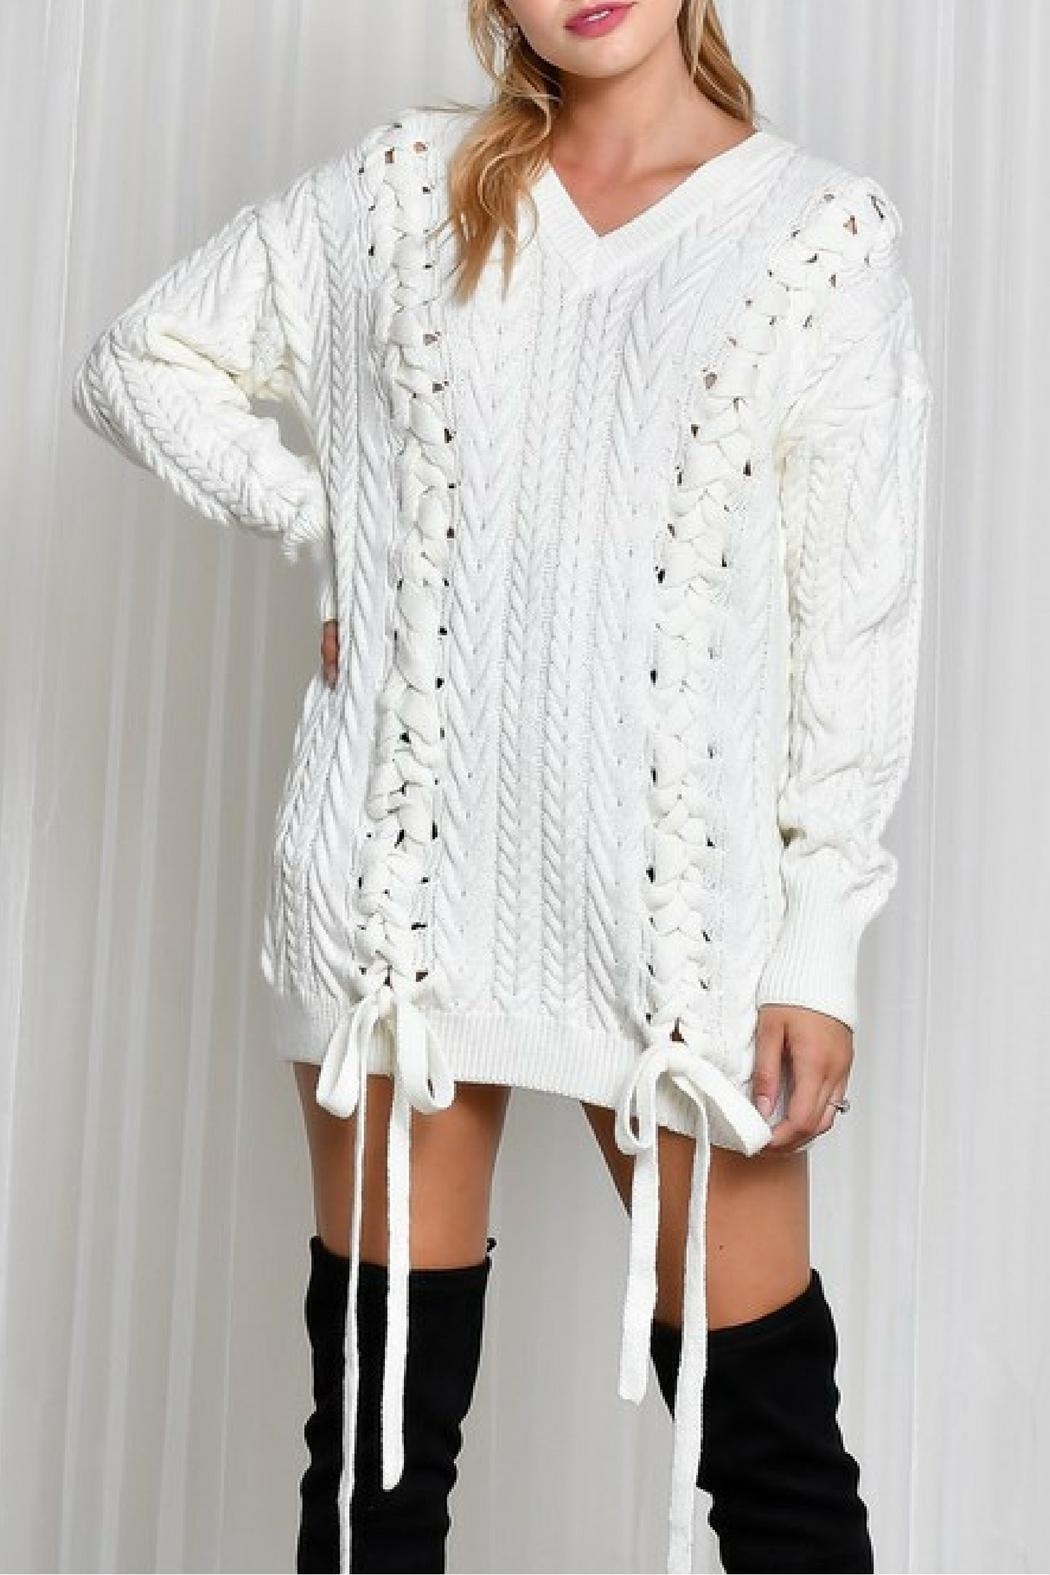 LIFTED Boutique Oversize Lace Up Sweater - Main Image